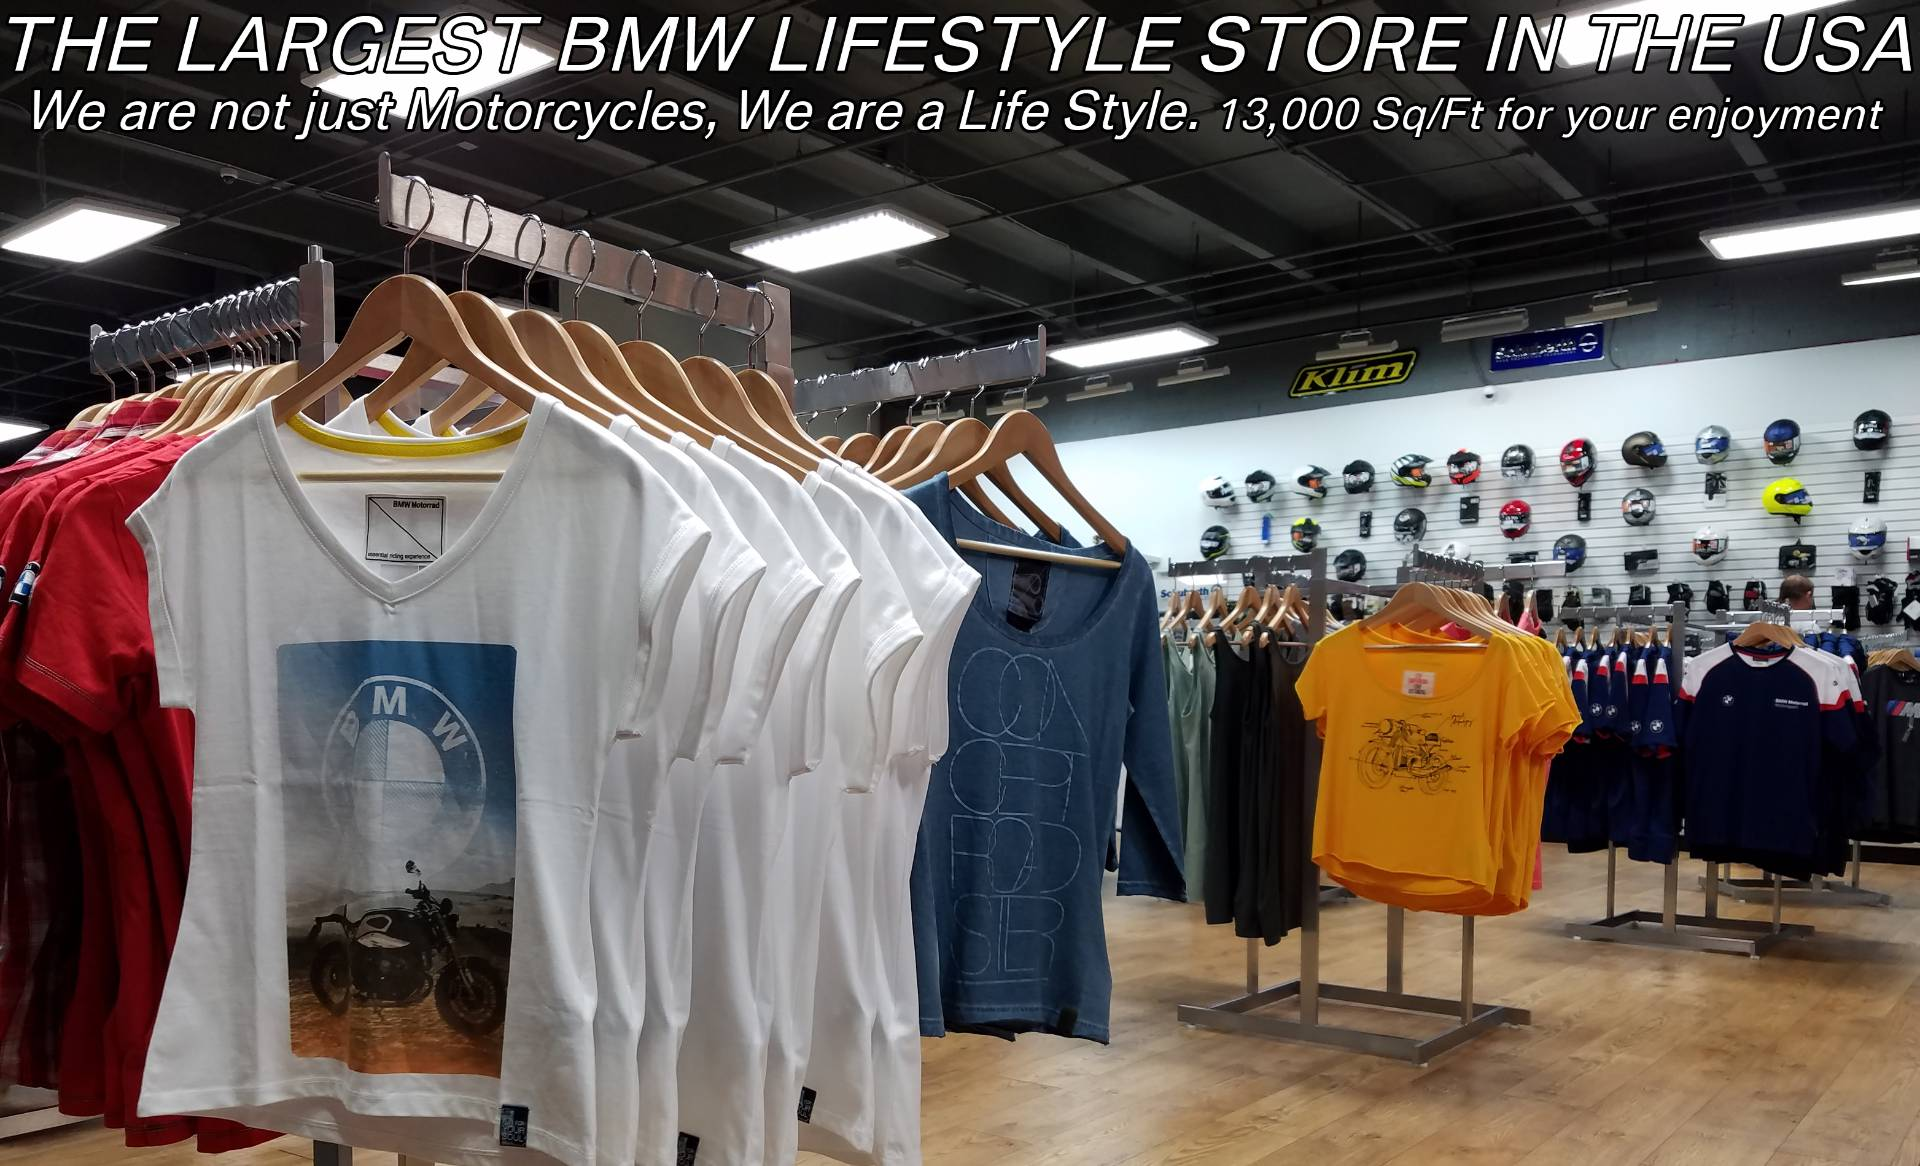 BMW Motorcycles of Miami, Motorcycles of Miami, Motorcycles Miami, New Motorcycles, Used Motorcycles, pre-owned. #BMWMotorcyclesOfMiami #MotorcyclesOfMiami. - Photo 36